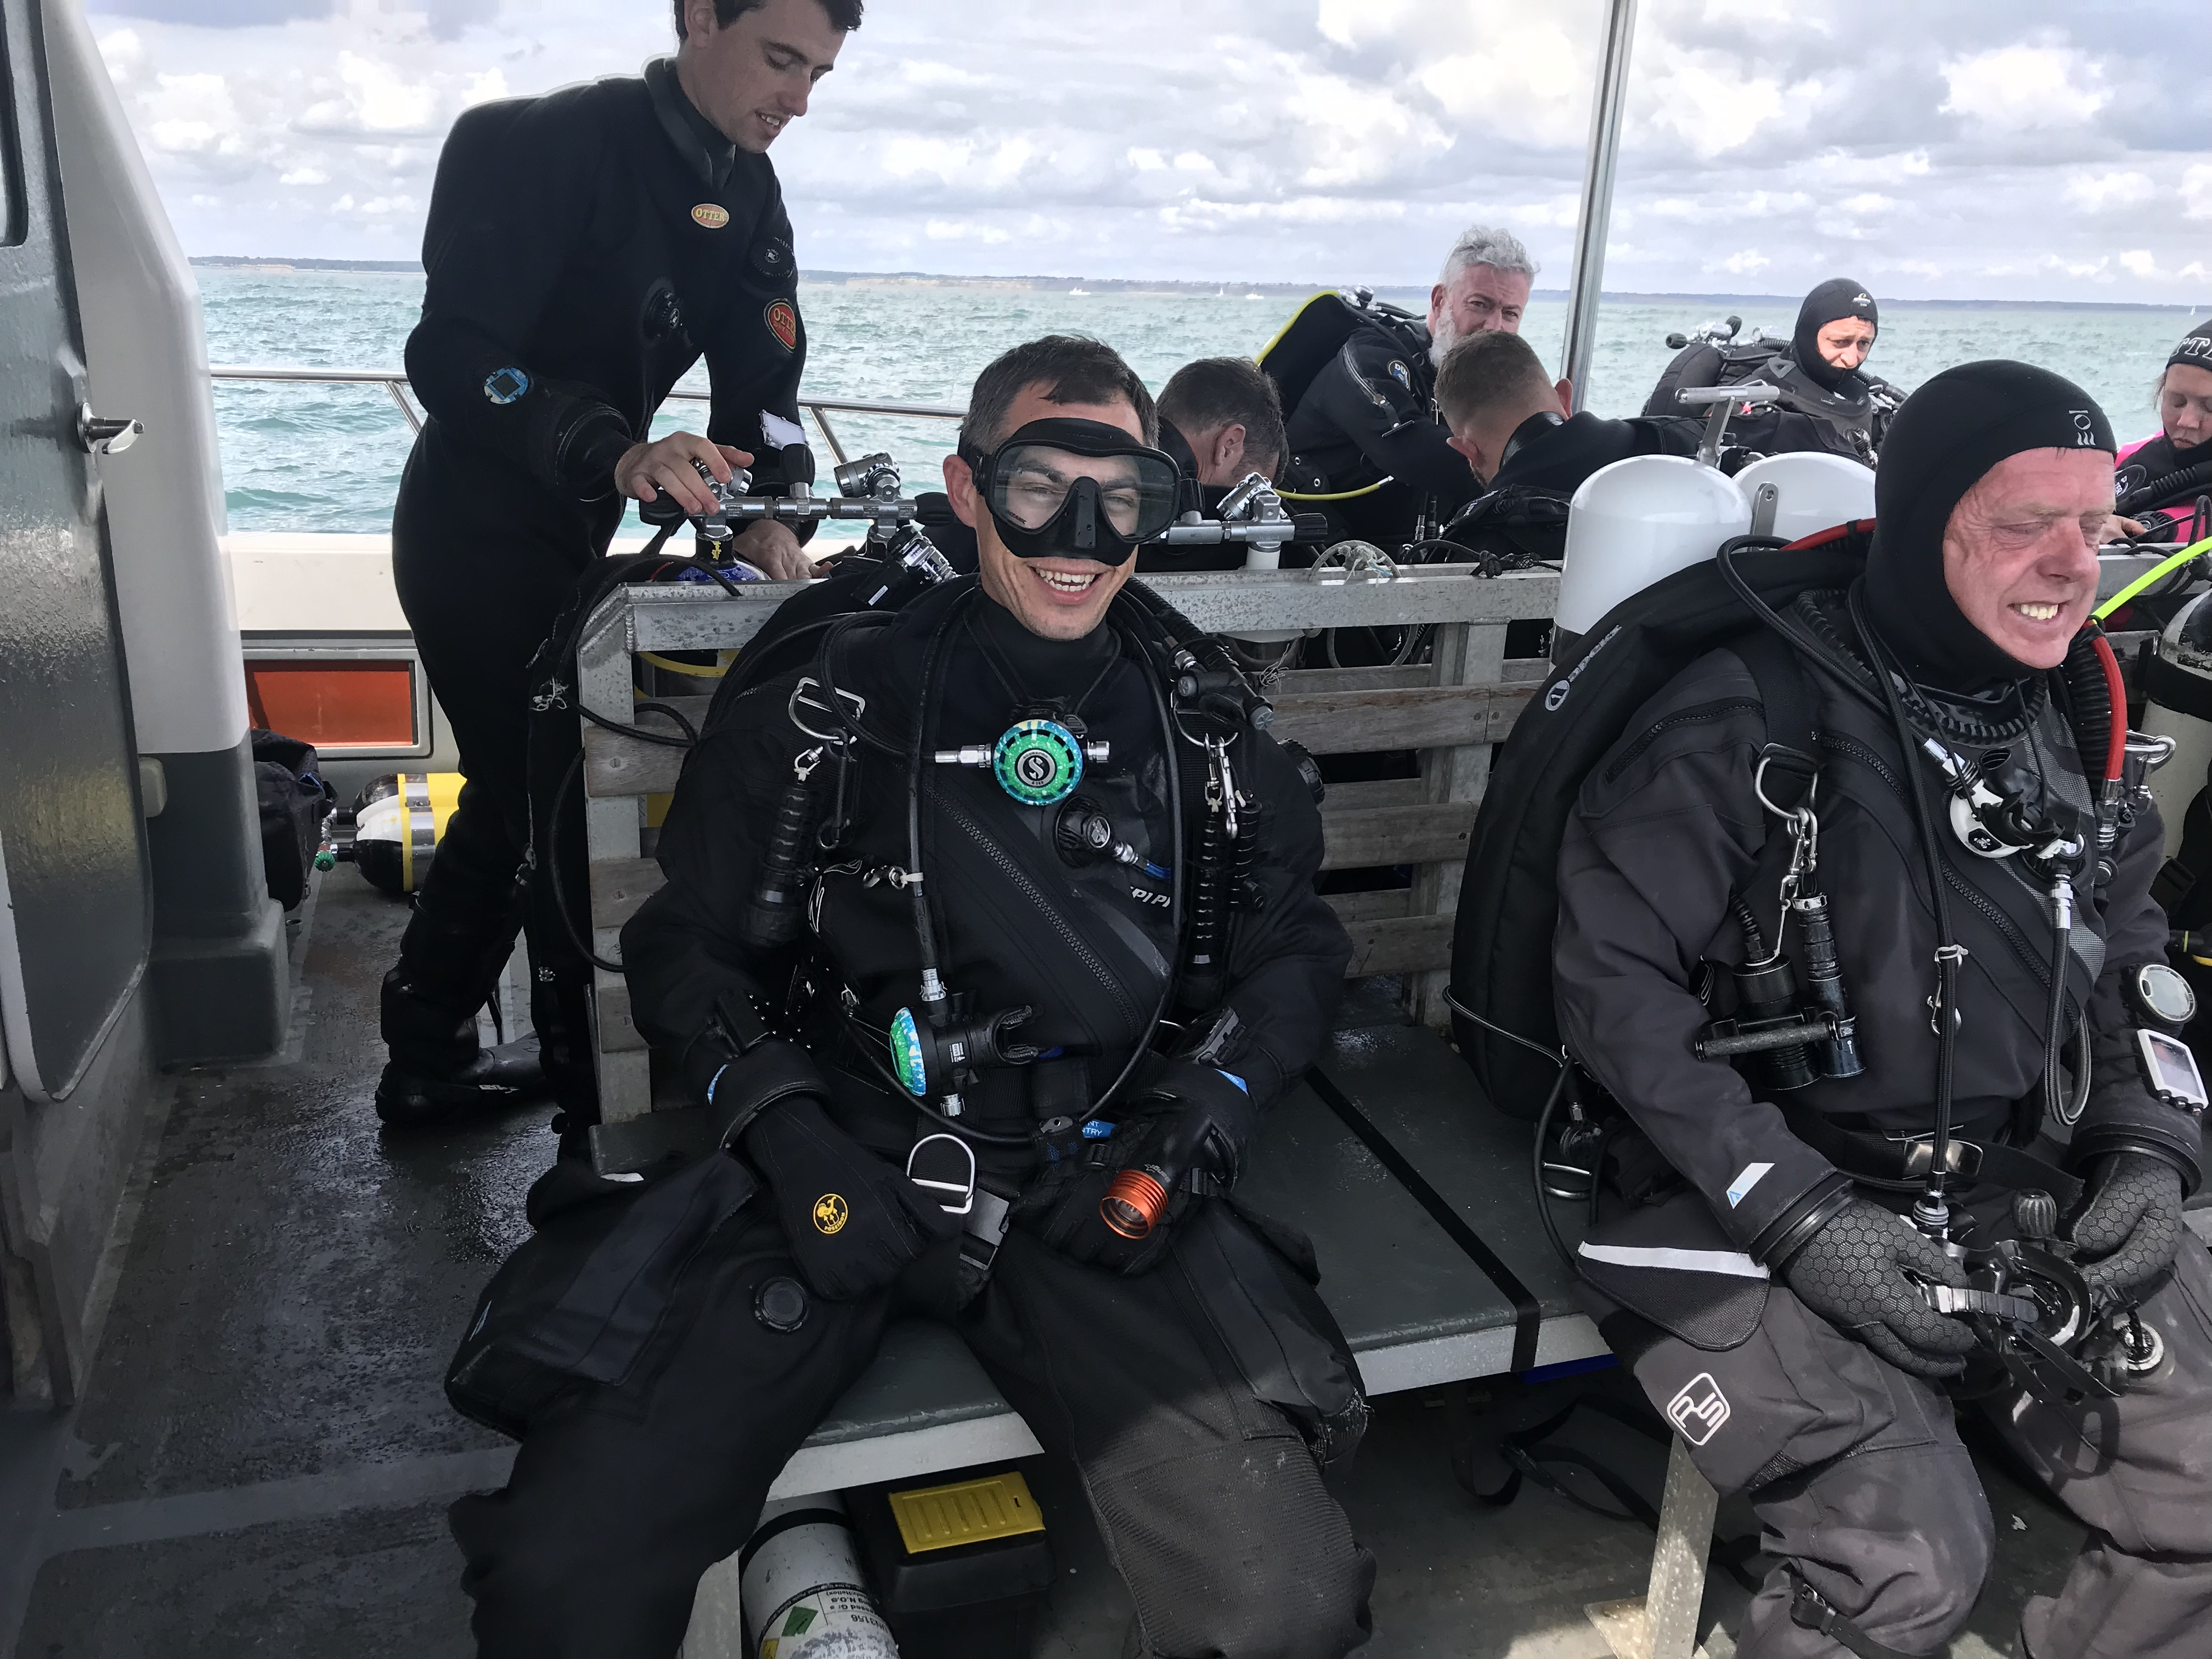 Diver on bench, fully kitted with Finnsub Bang torch